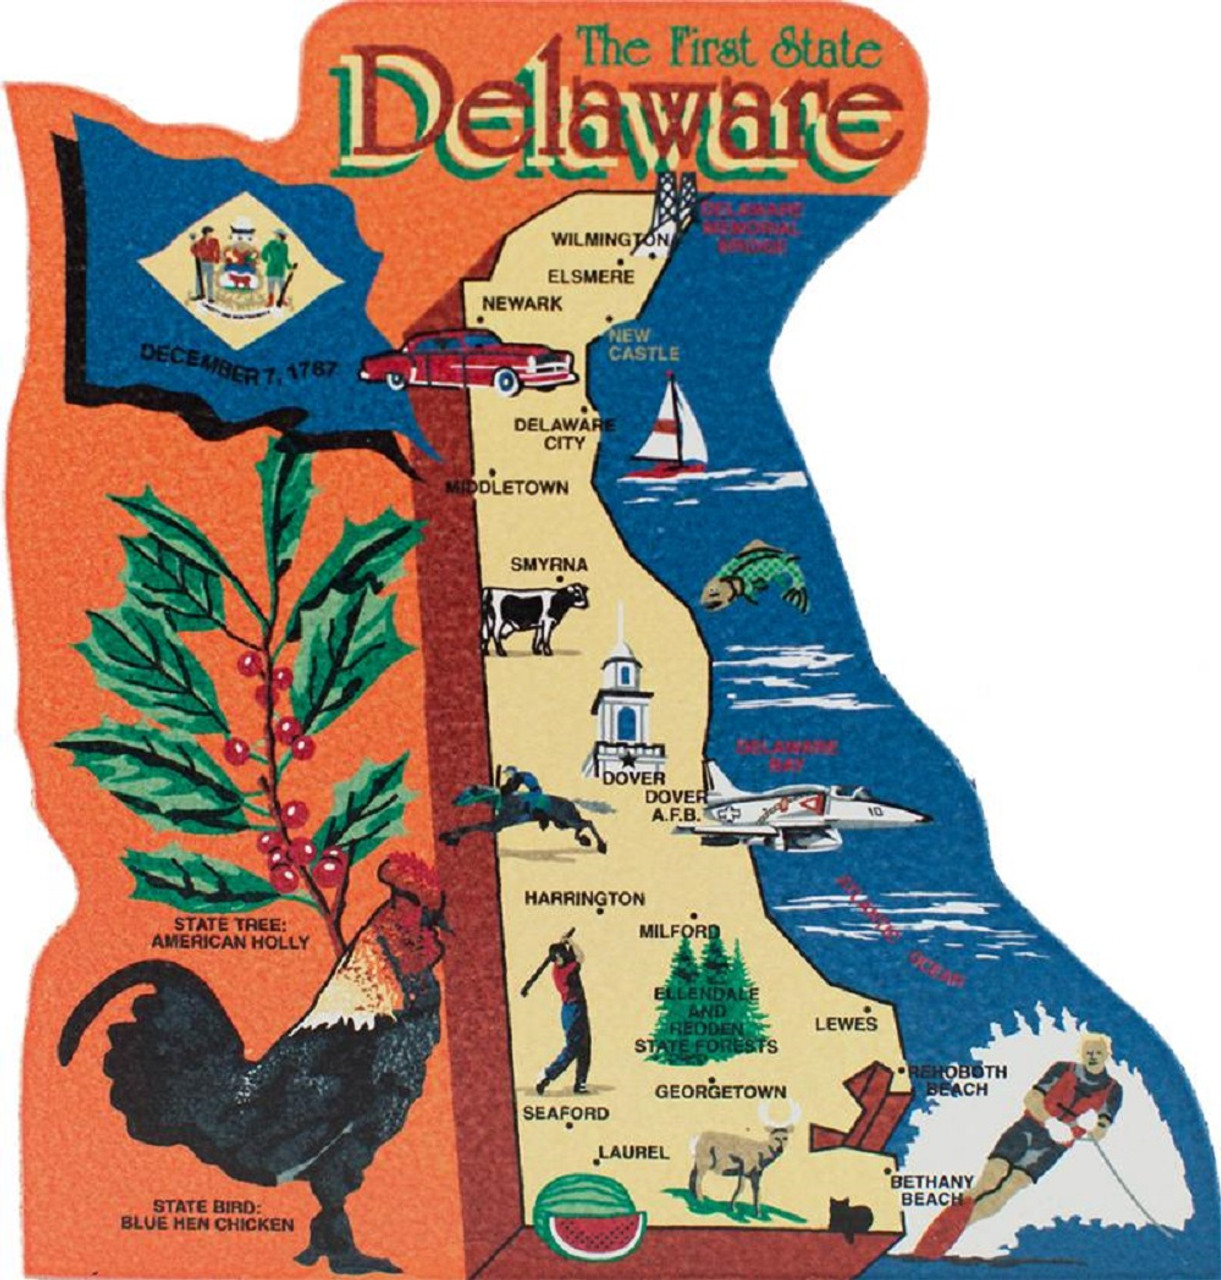 United States Map, Delaware First State on delaware history trail, delaware capital, delaware maryland, delaware major cities, delaware map cities, delaware major geographical features, delaware us map, delaware 13 colony map, delaware usa,